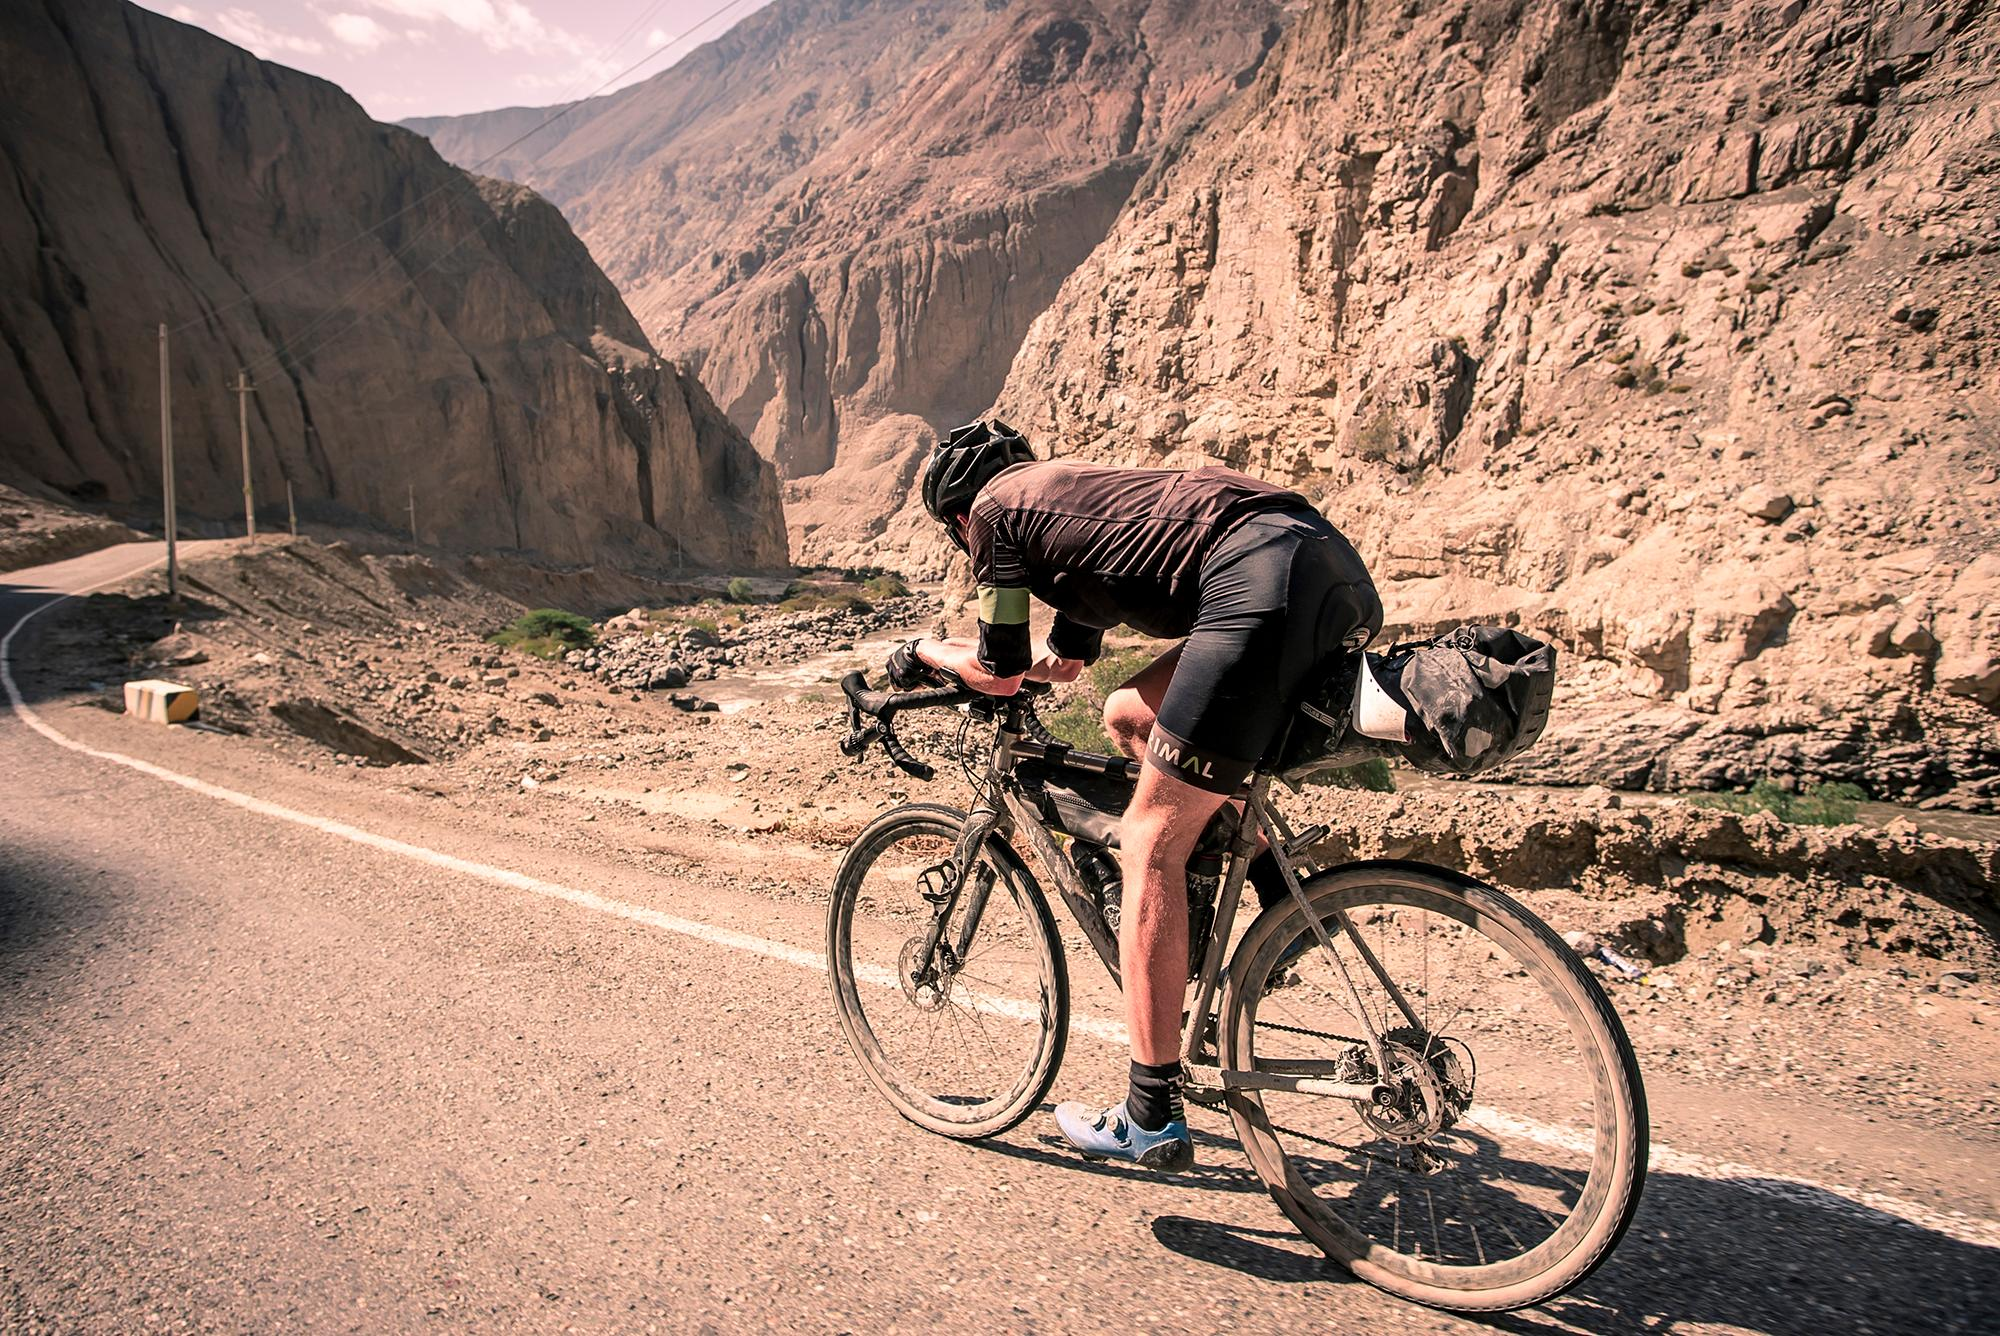 Chasing Jonas Deichmann on the Bikingman Peru Inca Divide